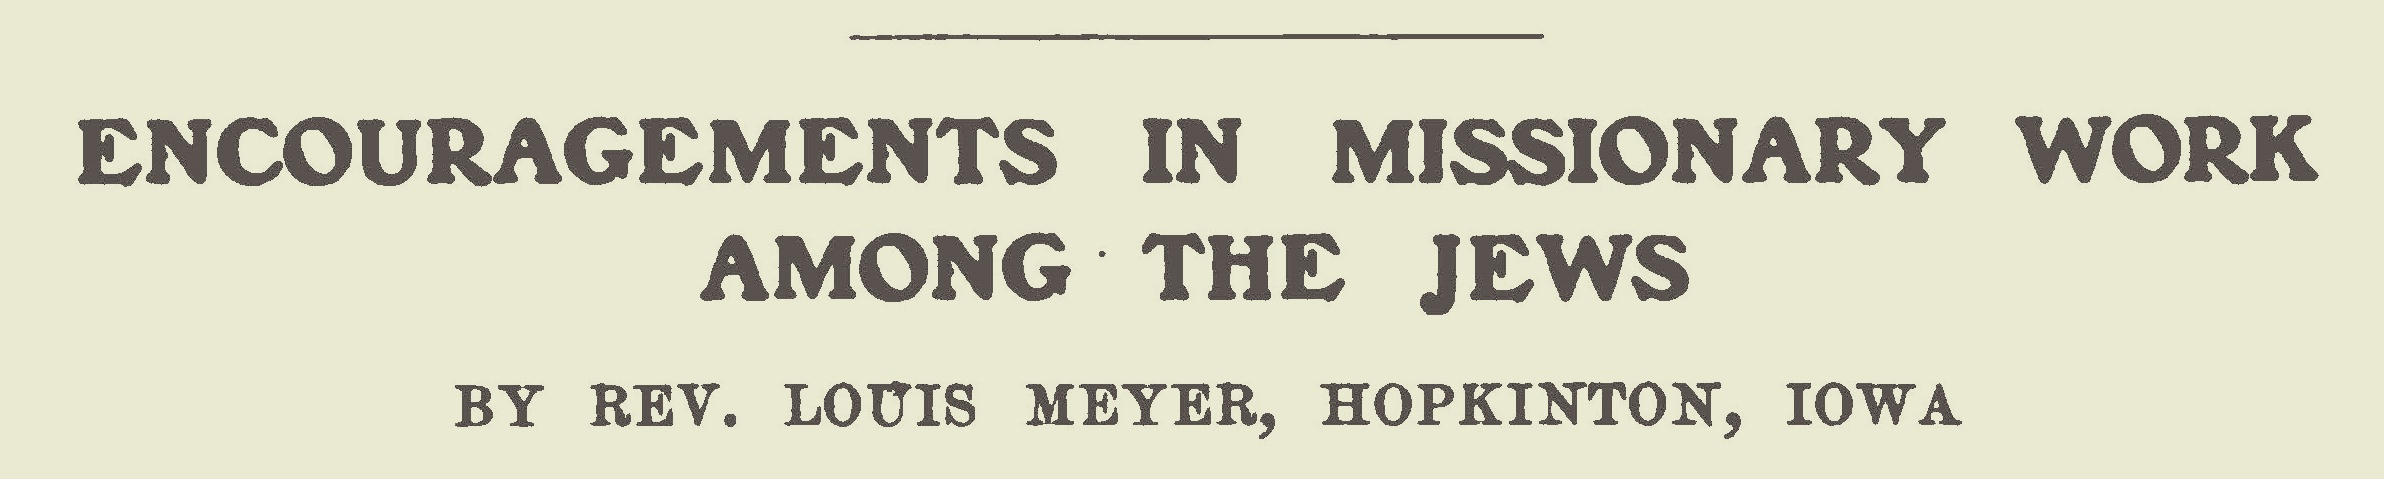 Meyer, Louis, Encouragements in Missionary Work Among the Jews Title Page.jpg